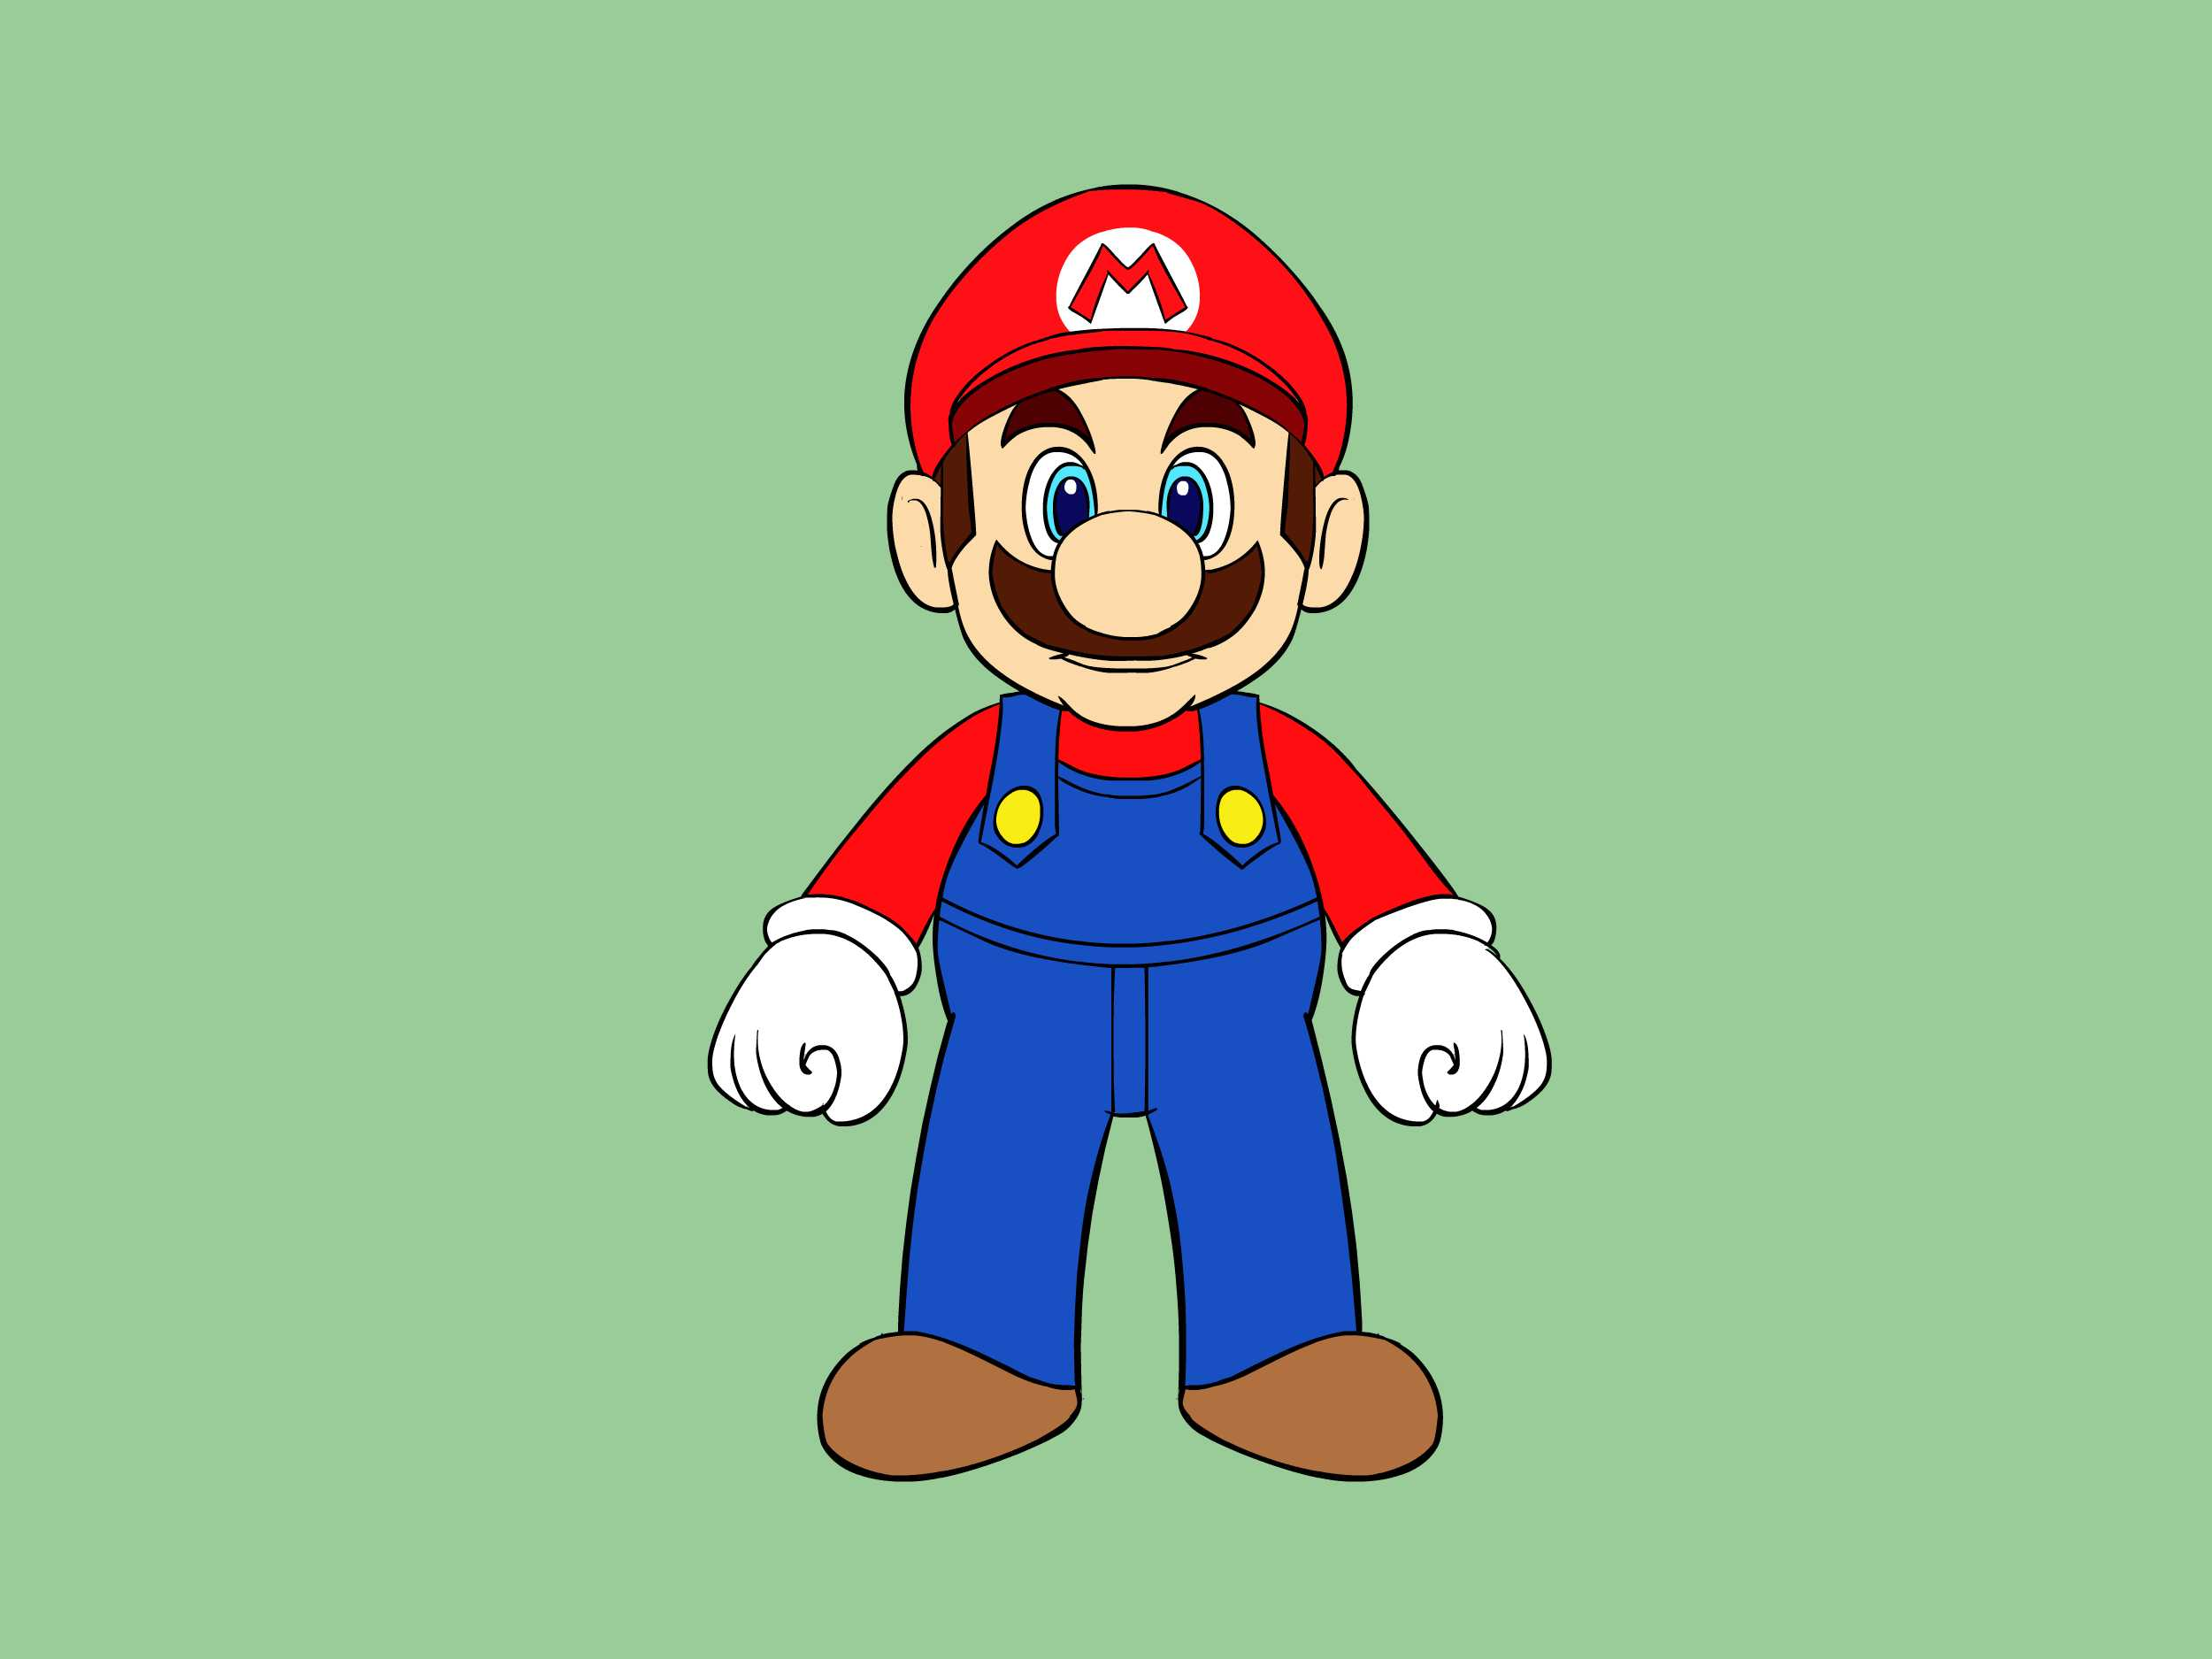 Mario clipart easy Ways Characters to Draw